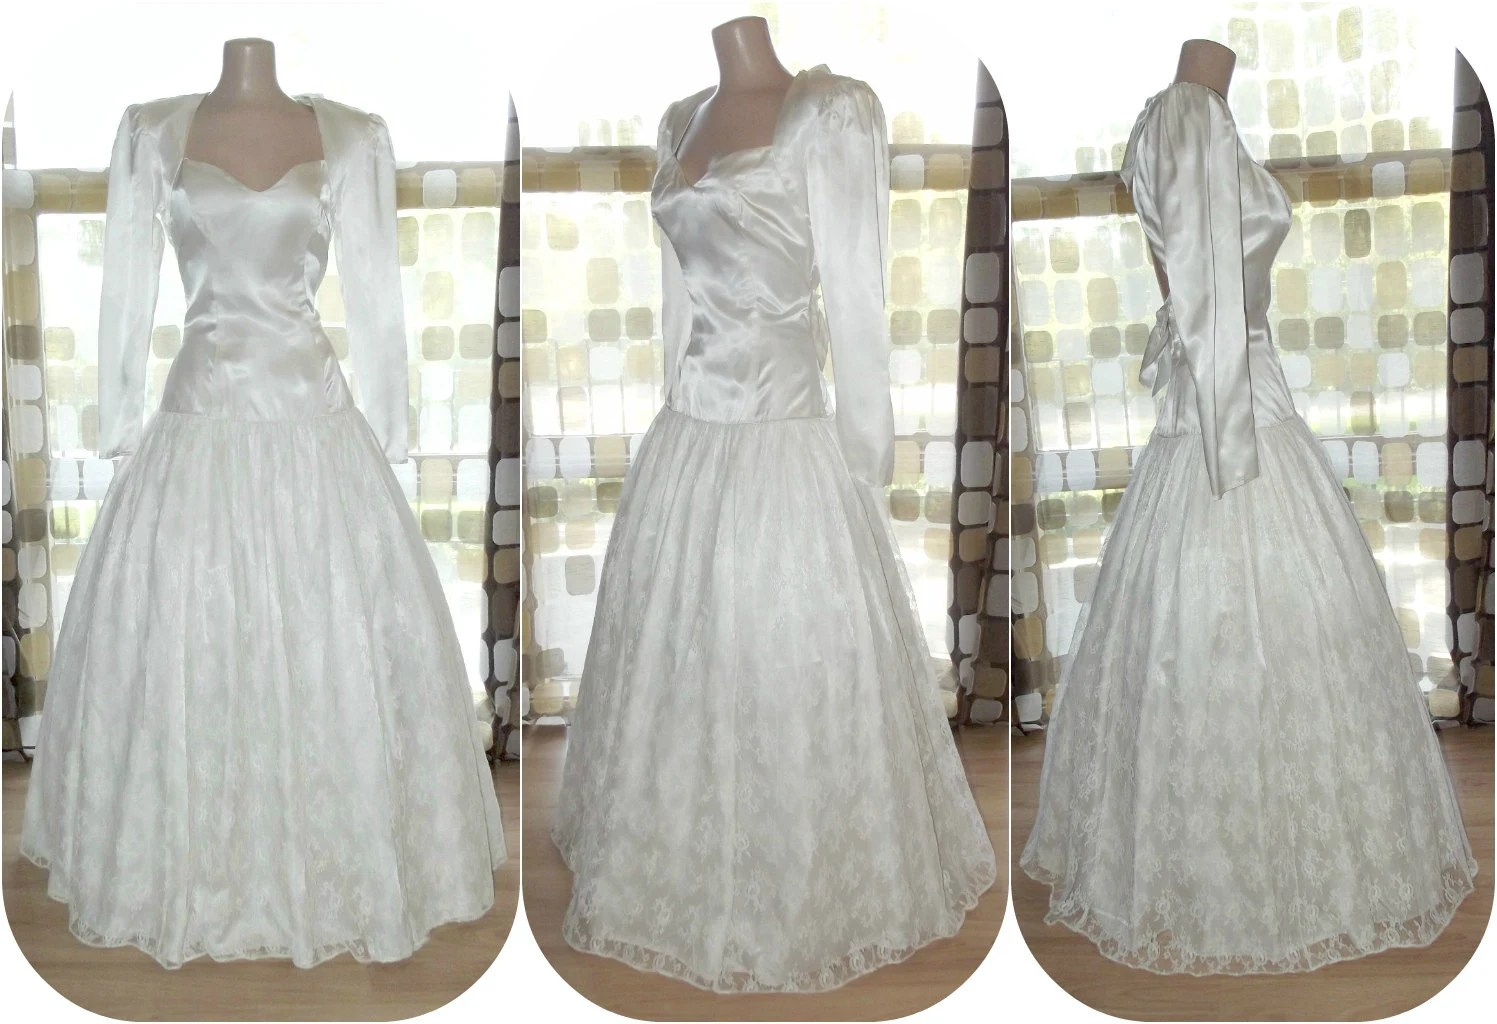 Vintage 80s Ball Gown 1980s Wedding Dress White Lace Prom